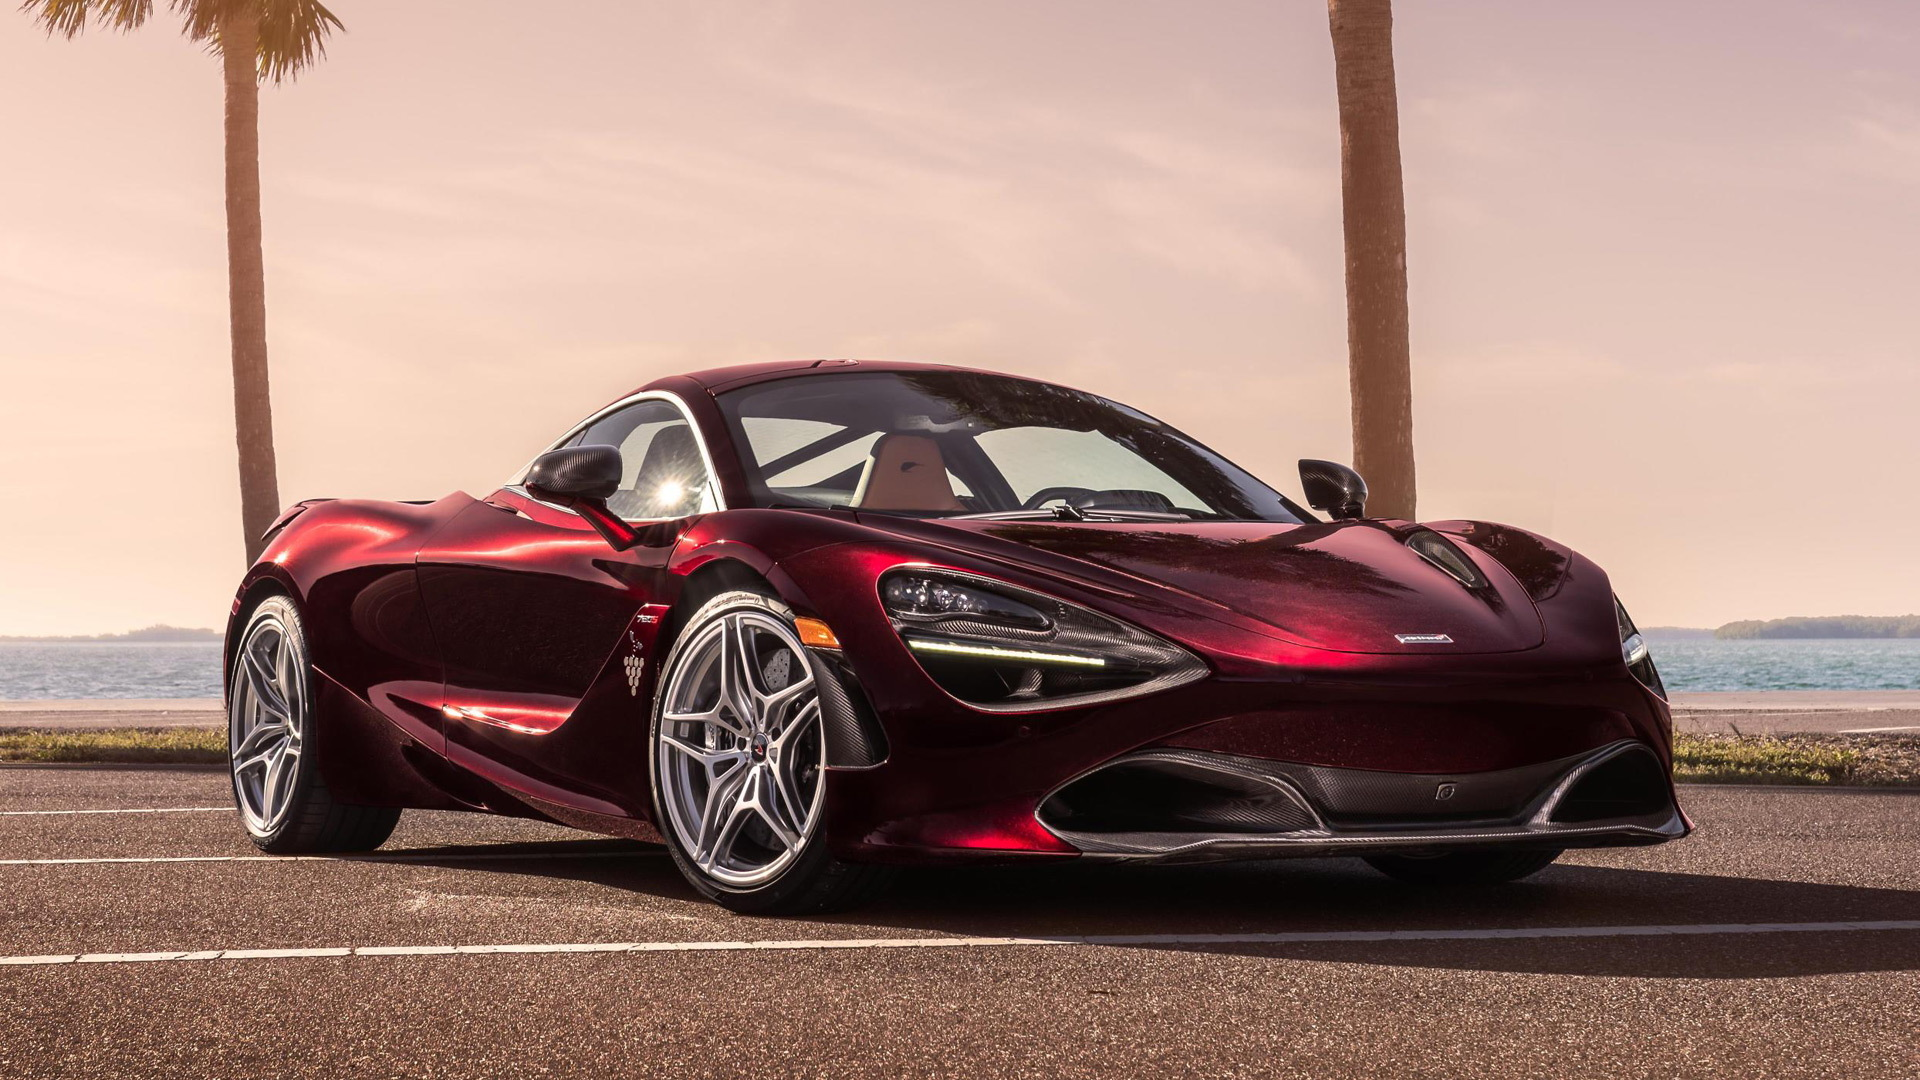 McLaren 720S finished in bespoke Nerello Red paint